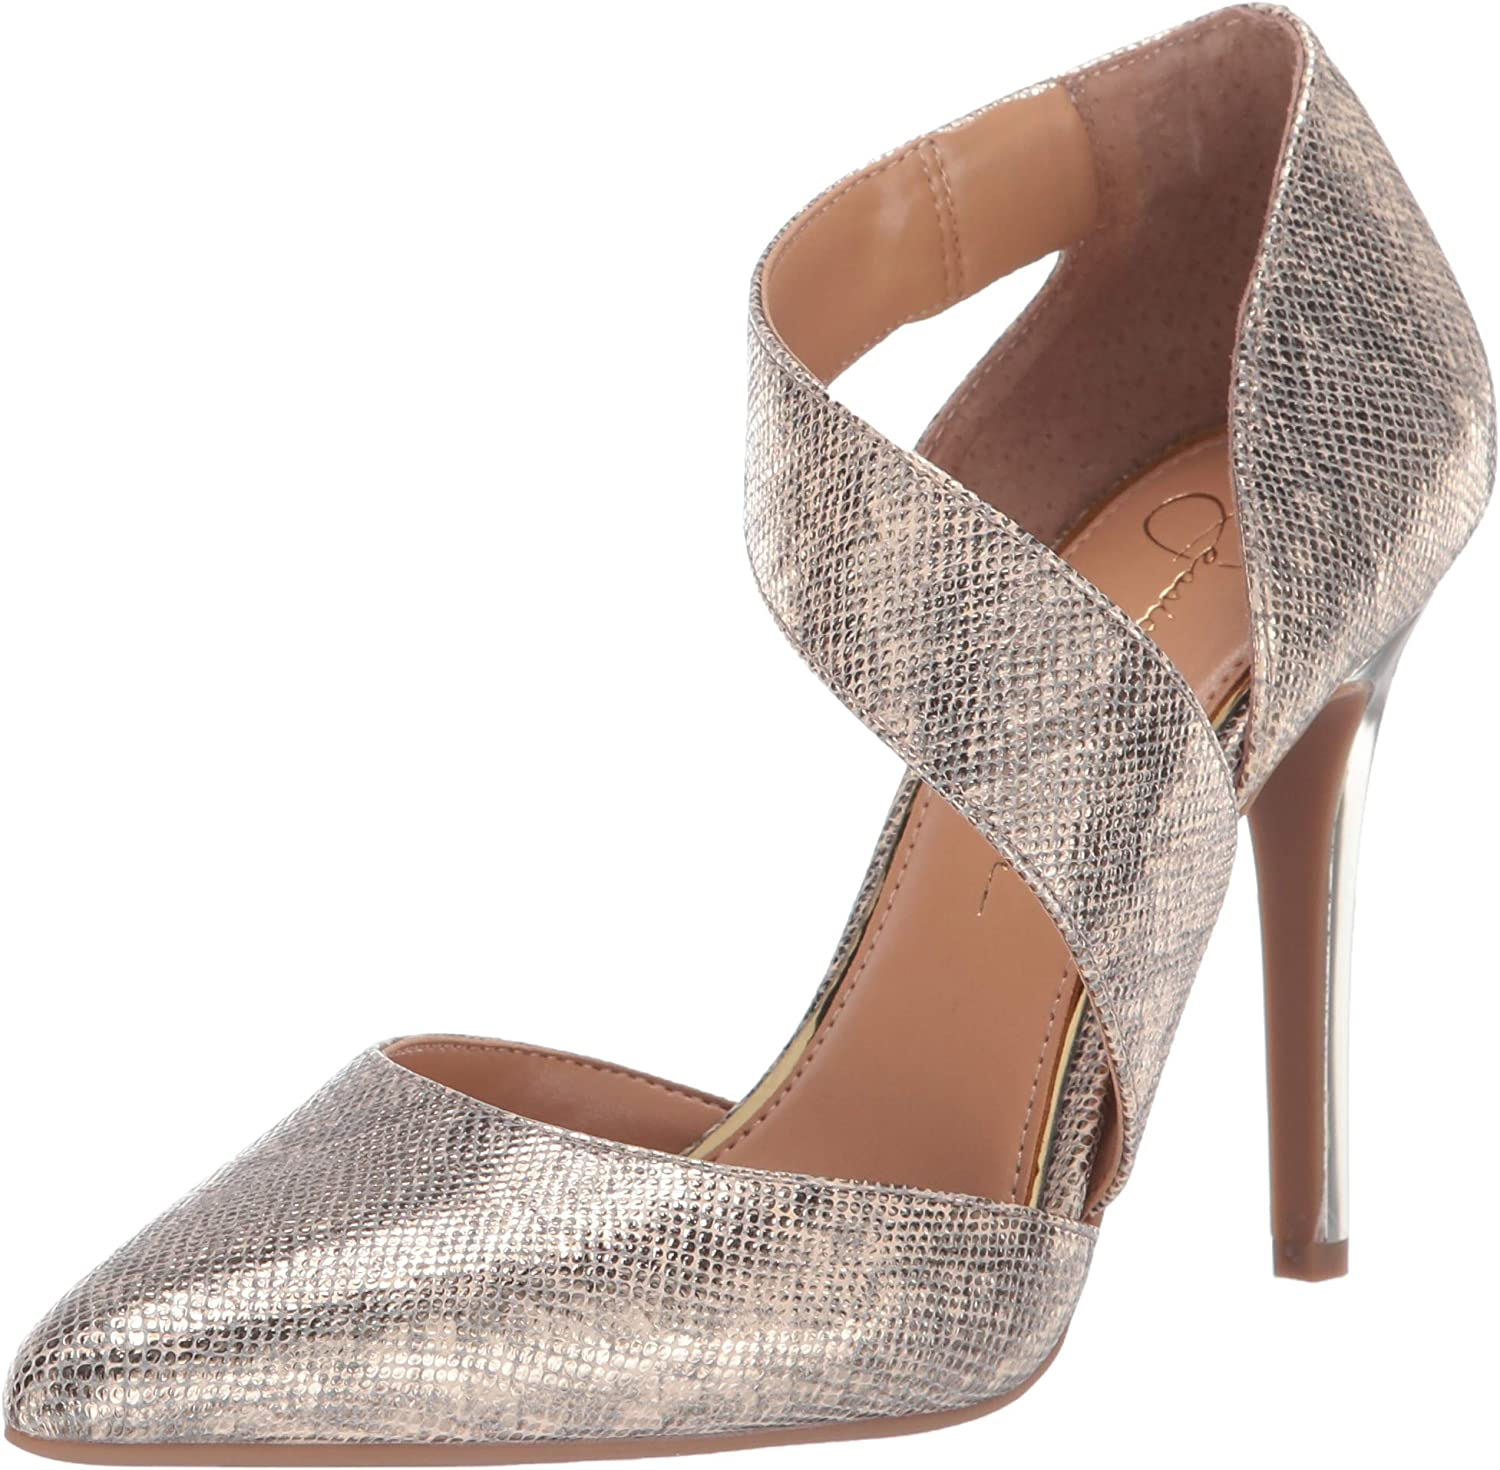 Jessica Simpson Women's Pintra Don't miss the campaign Pump Limited time for free shipping